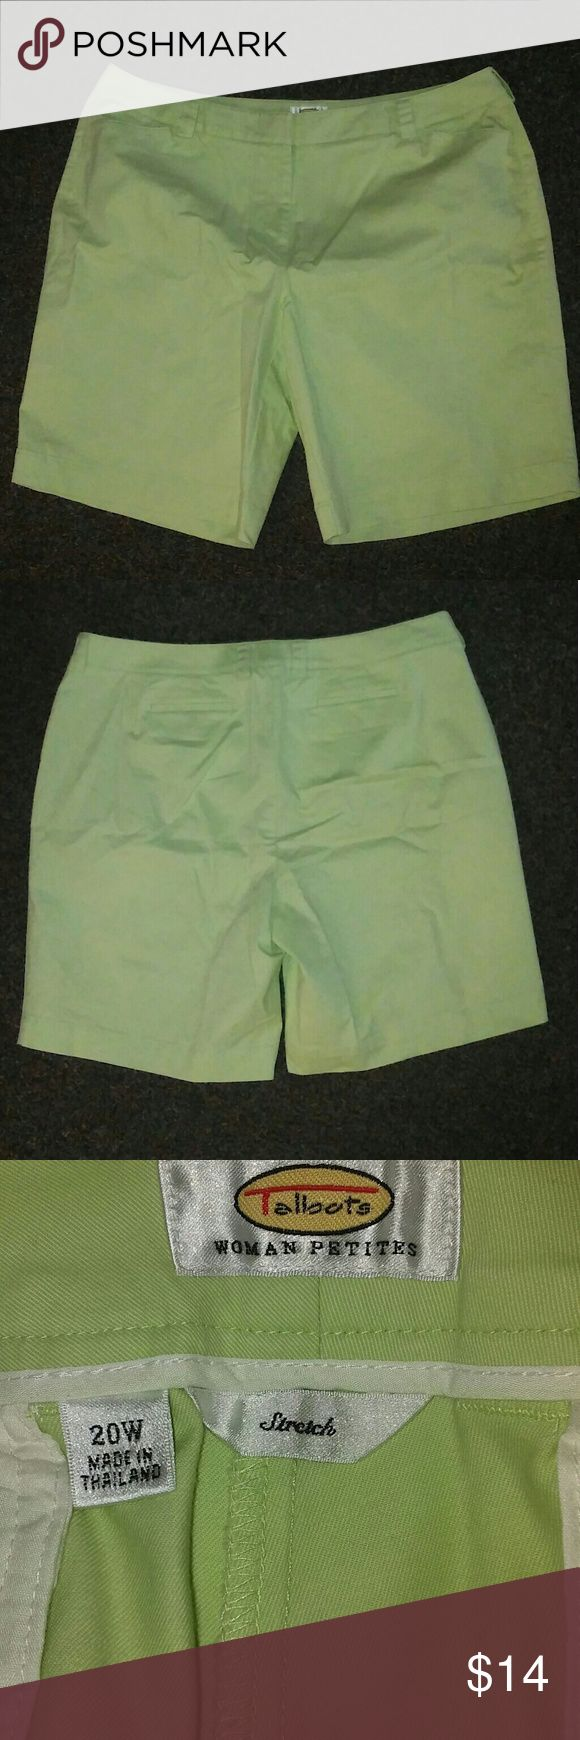 Talbots Shorts-Womans Petites In very good used condition no blemishes that i noticed. Inseam 10 inches. Rise is almost 12 inches. Size is 20 womans petite 98% cotton 2% spandex. Color is a light mint green. First 2 photos are pretty close to actual color Talbots Shorts Bermudas